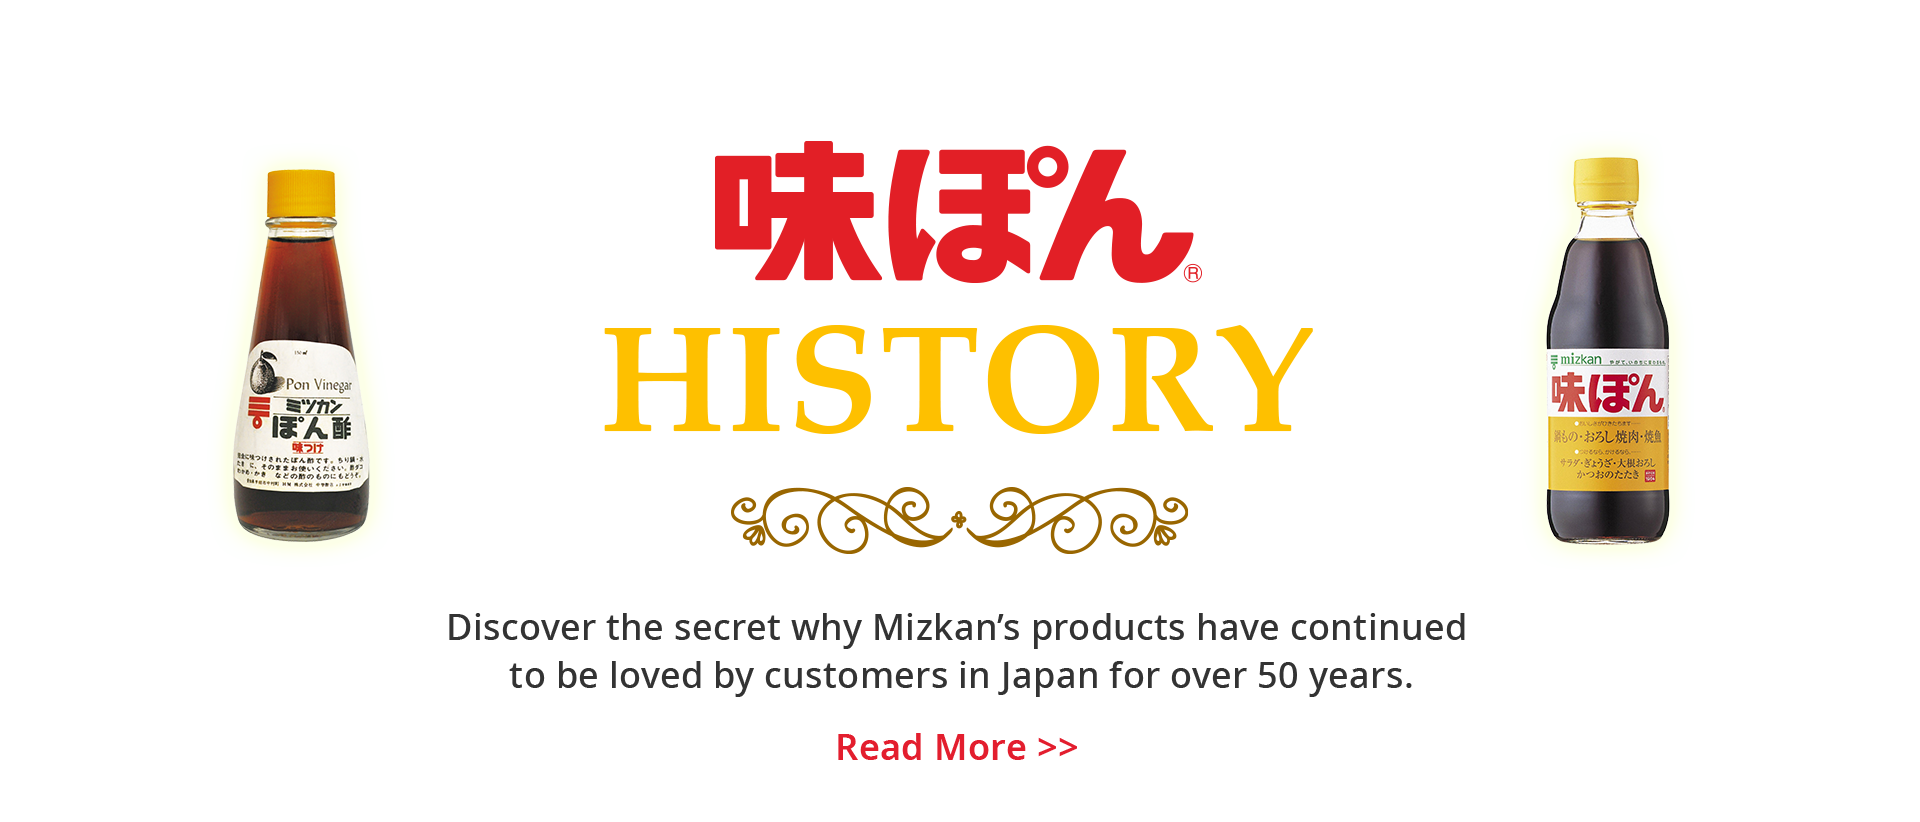 History of AJIPON - Discover the secret why Mizkan's products have continued to be loved by customers in Japan for over 50 years.